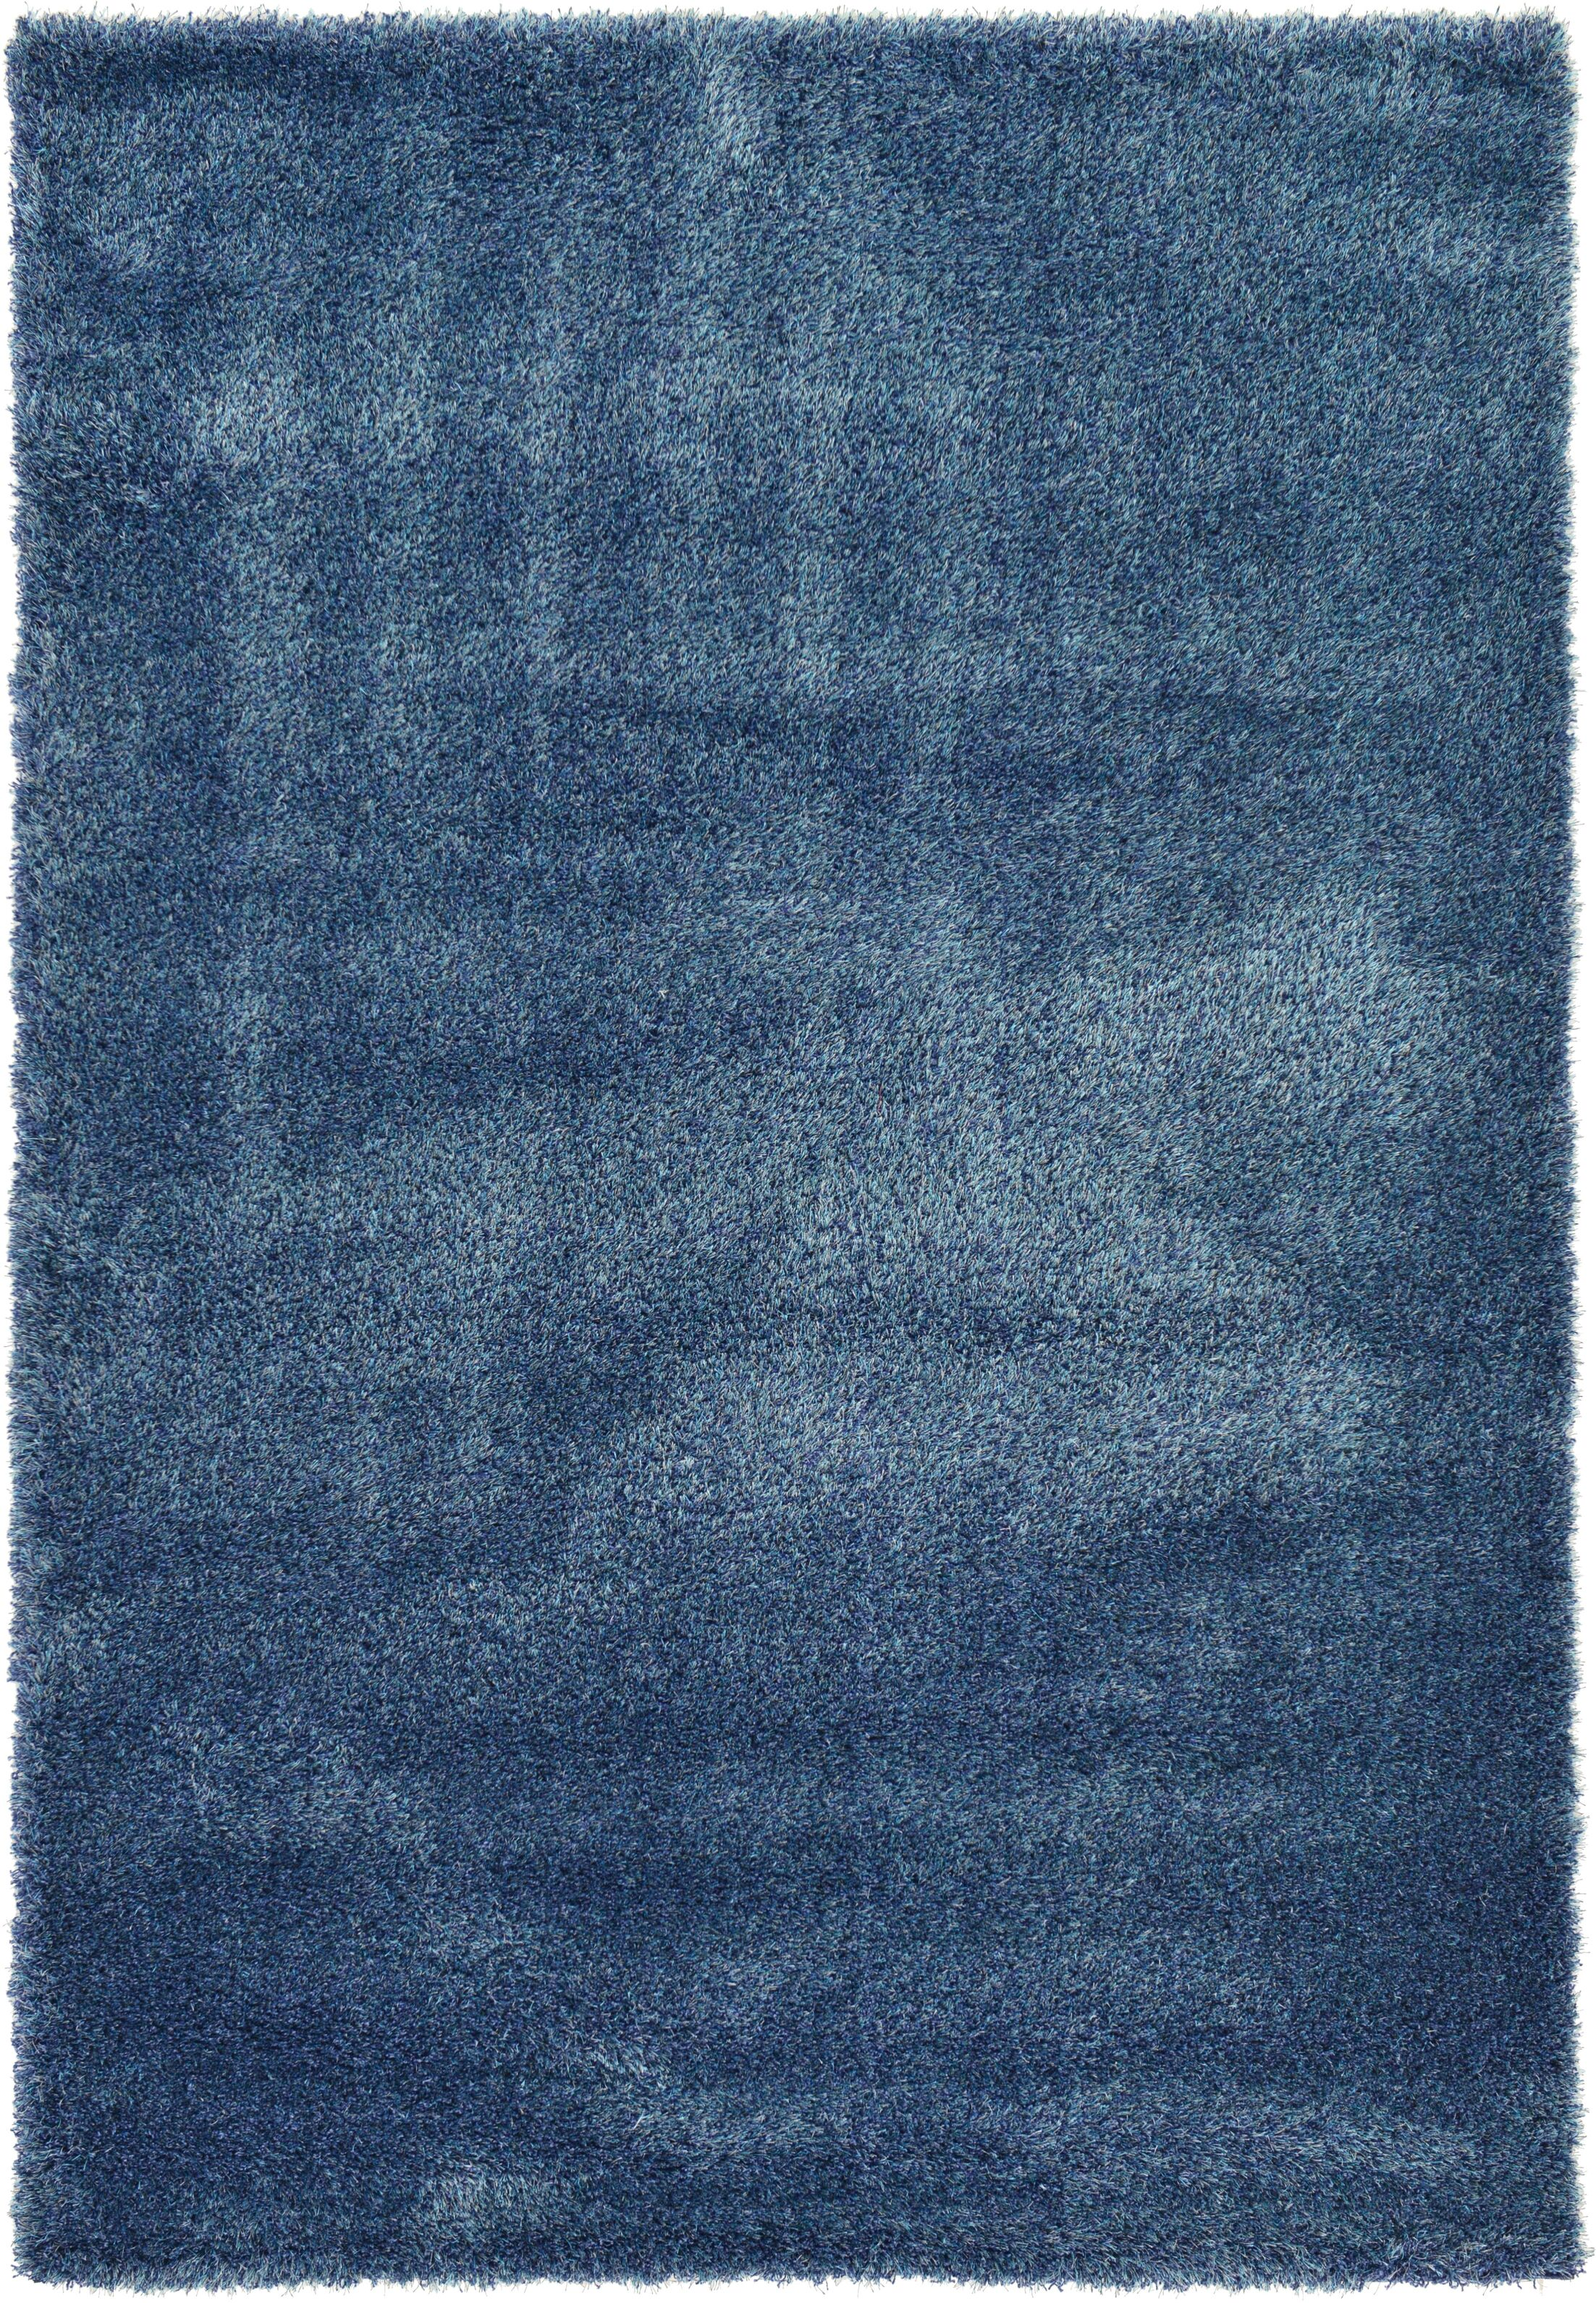 Evelyn Navy Blue Area Rug Rug Size: Rectangle 6' x 9'